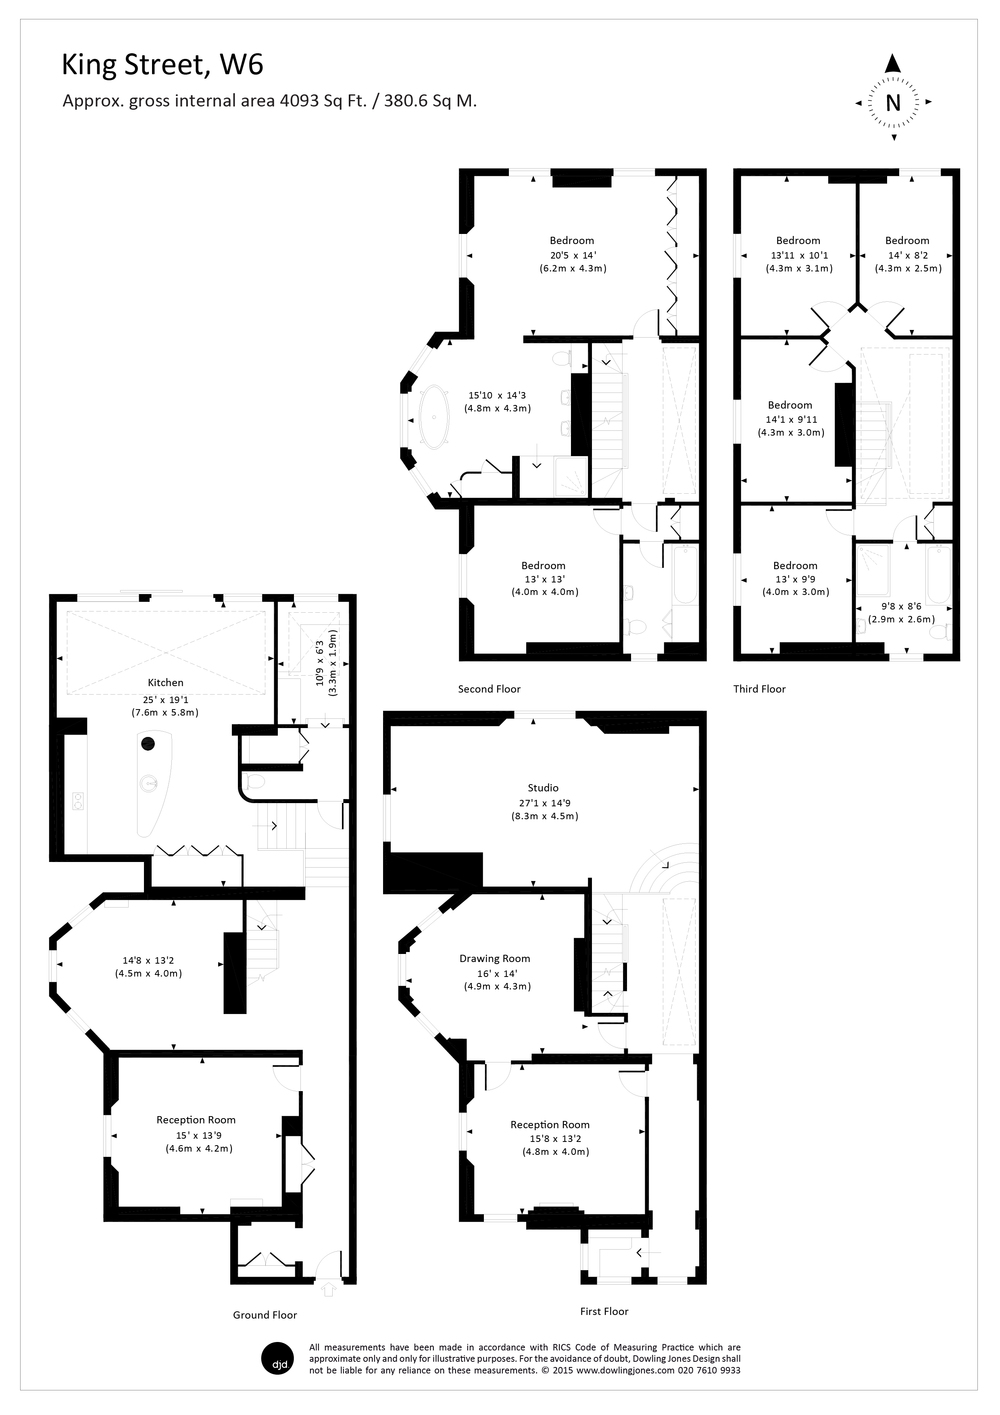 dowling jones king street floor plan